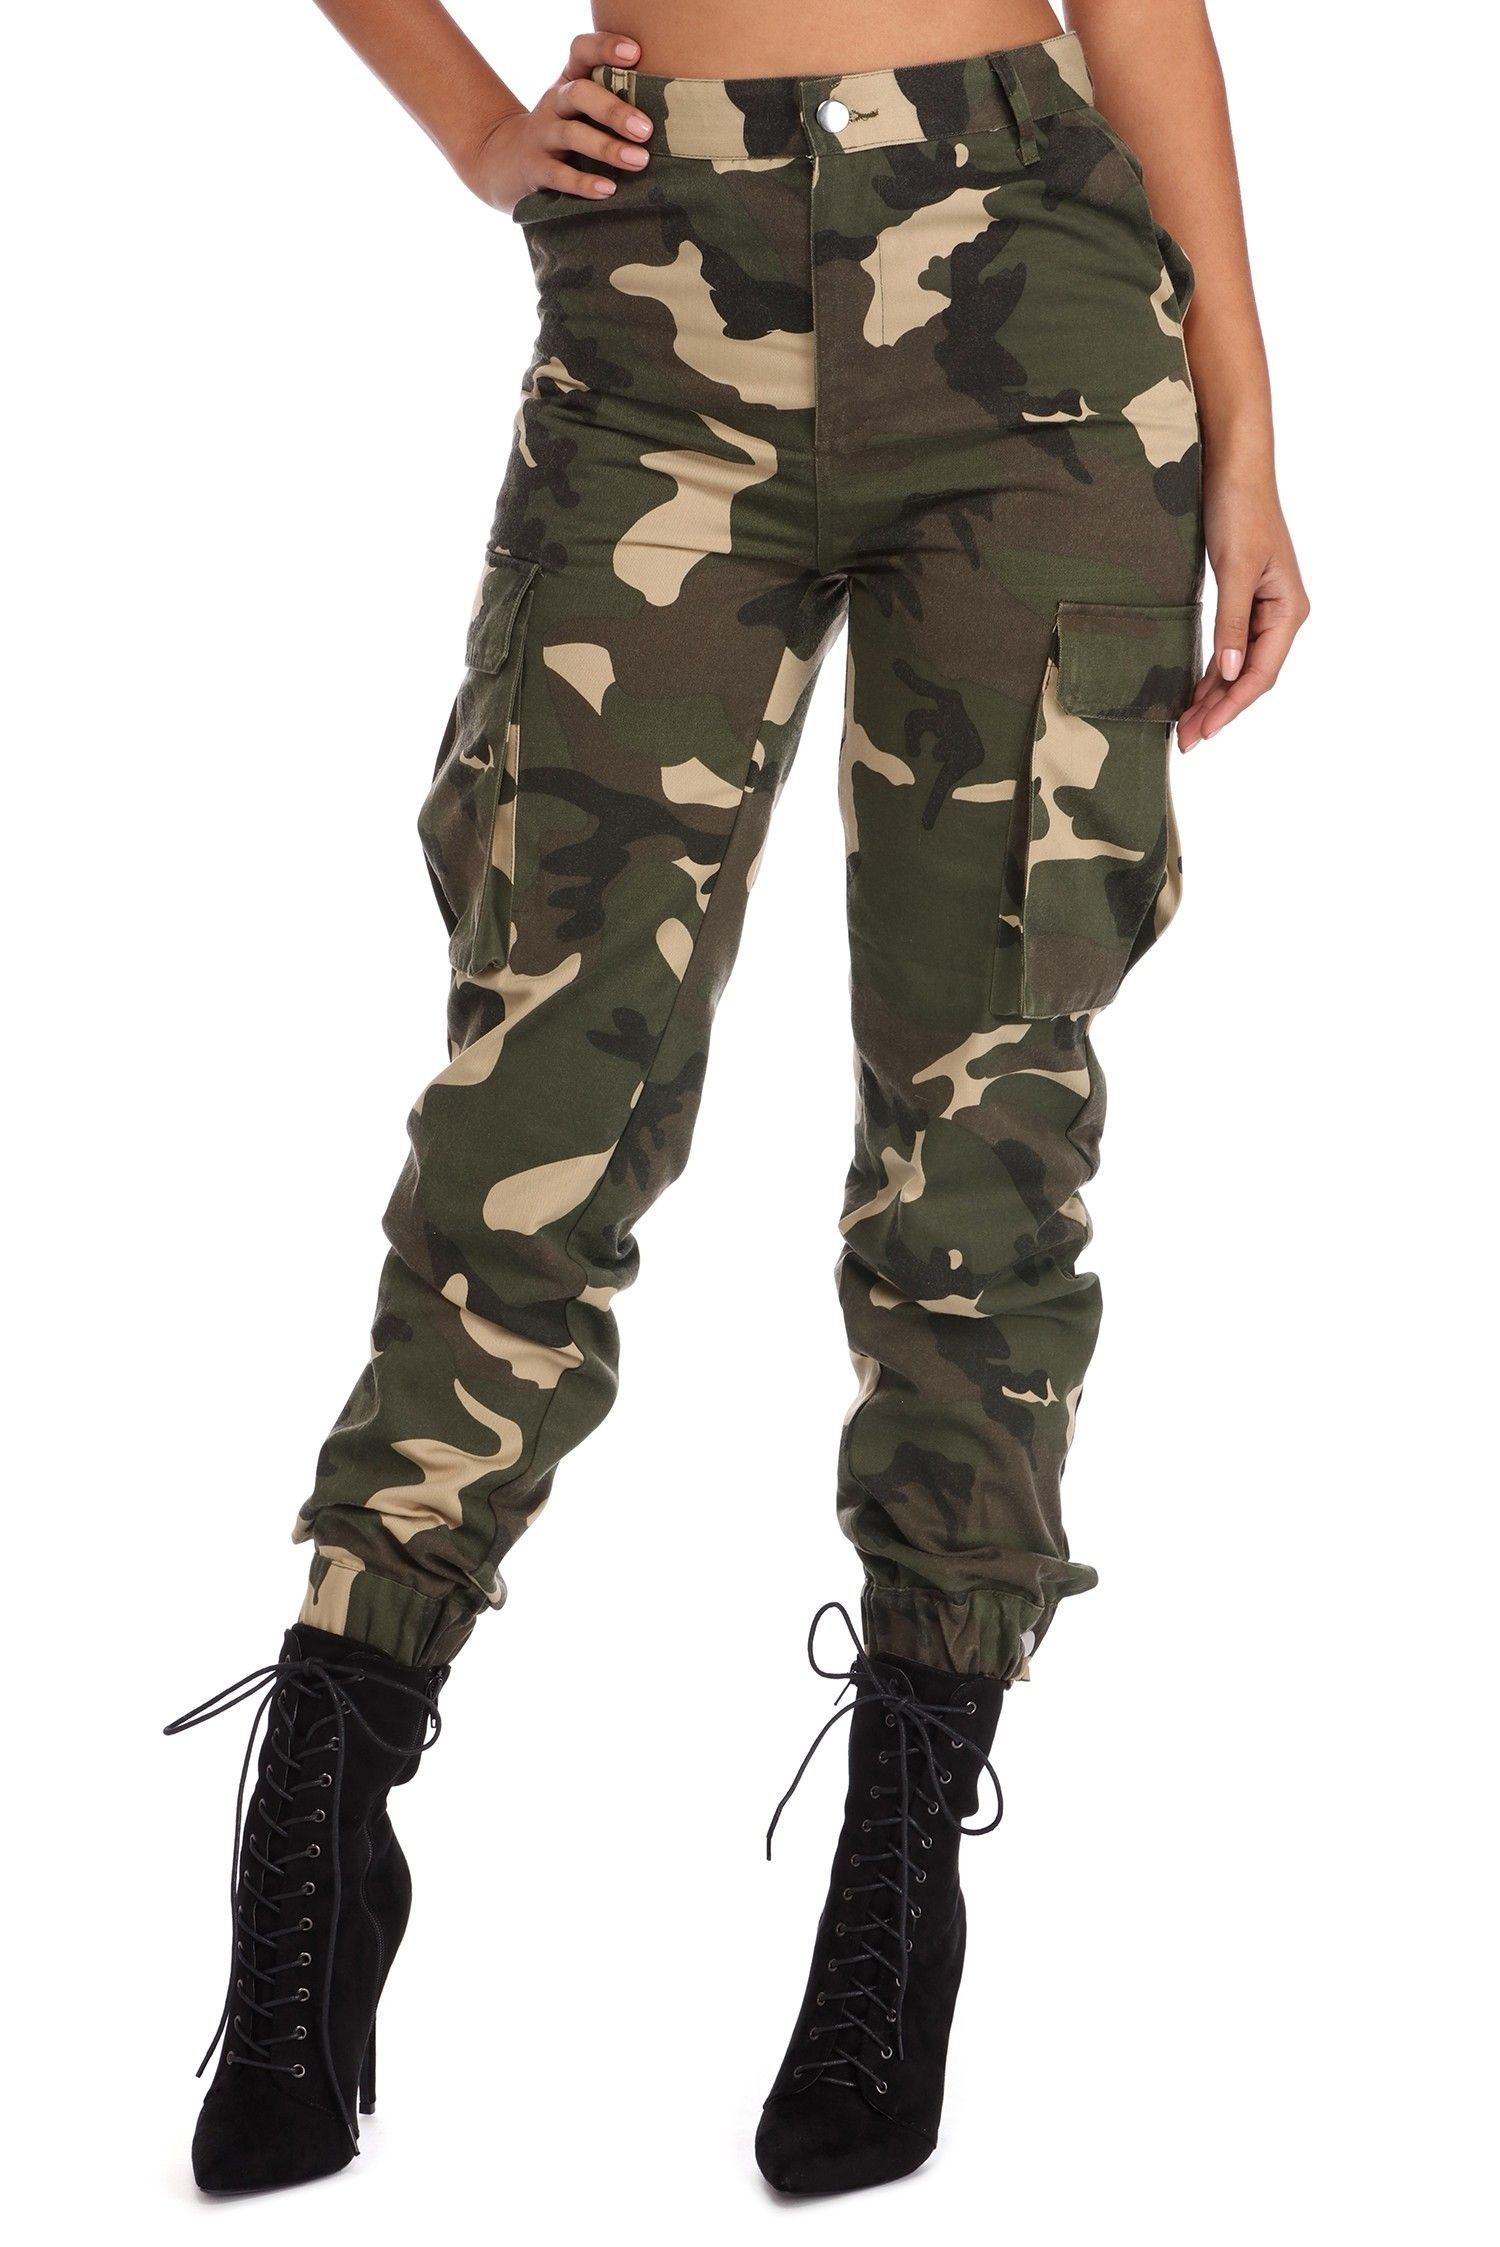 Cargo camo pants outfit, military camouflage, cargo pants